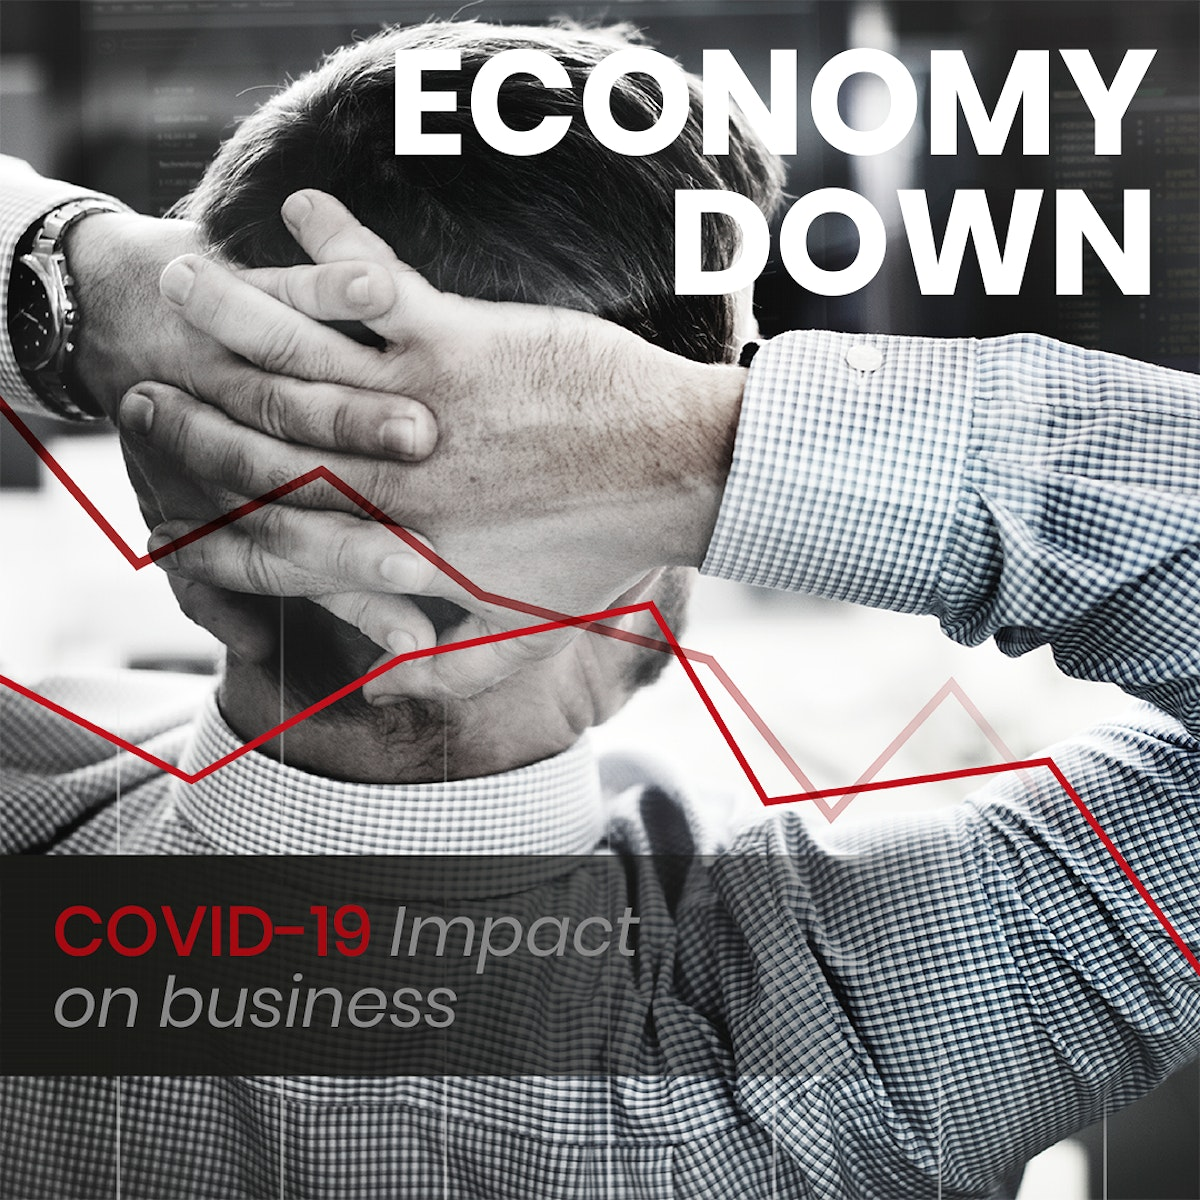 Economy down, covid-19 impact on business social banner template mockup